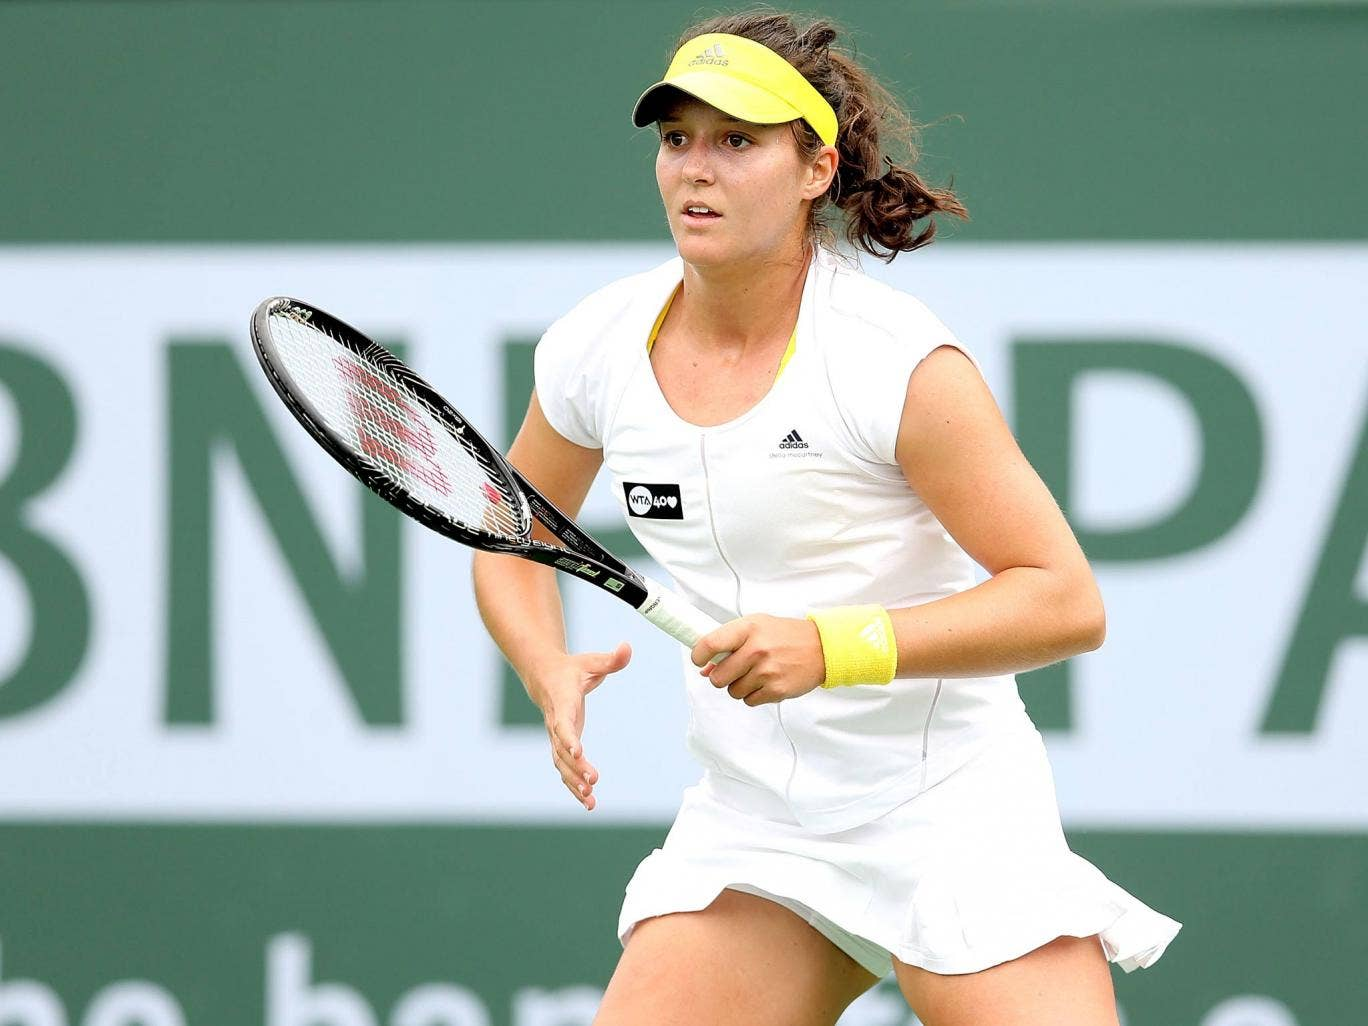 Laura Robson at Indian Wells